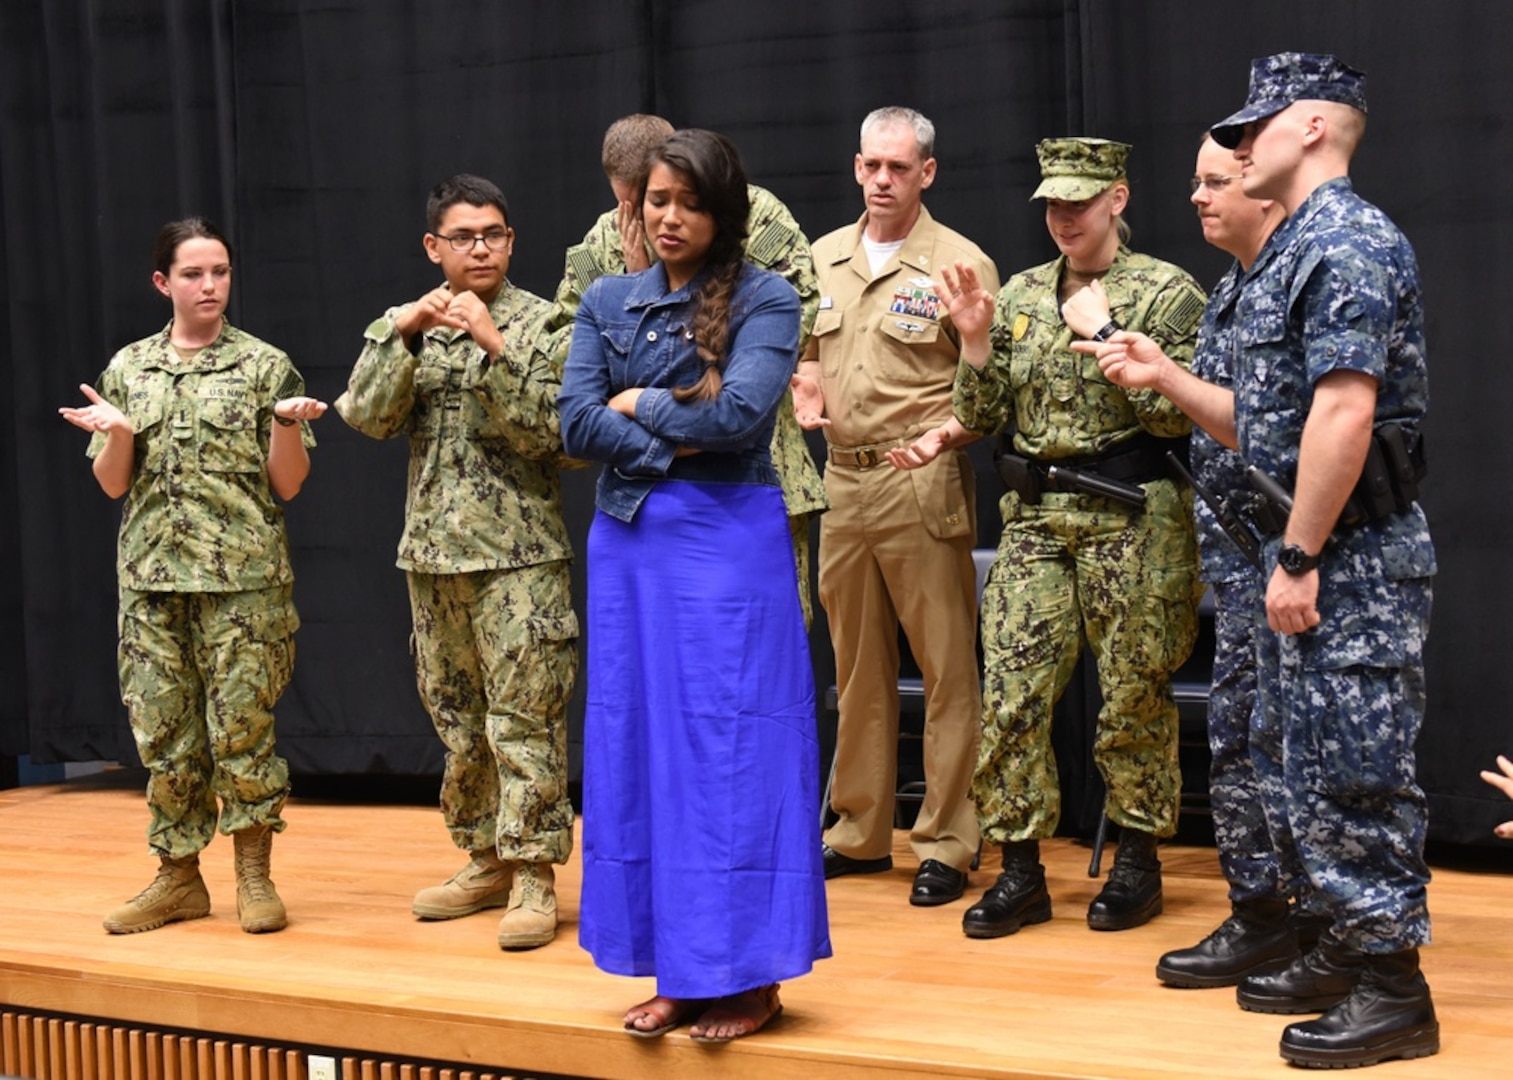 CHINHAE, Republic of Korea, (June 19, 2015) Sailors from Commander. Naval Forces Korea participate with actor Briza Covarrubias of the acting troupe InterACT during a Sexual Assault Prevention and Response training scenario at Commander, Fleet Activities Chinhae. (U.S. Navy photo by Mass Communication Specialist 1st Class Abraham Essenmacher/Released)